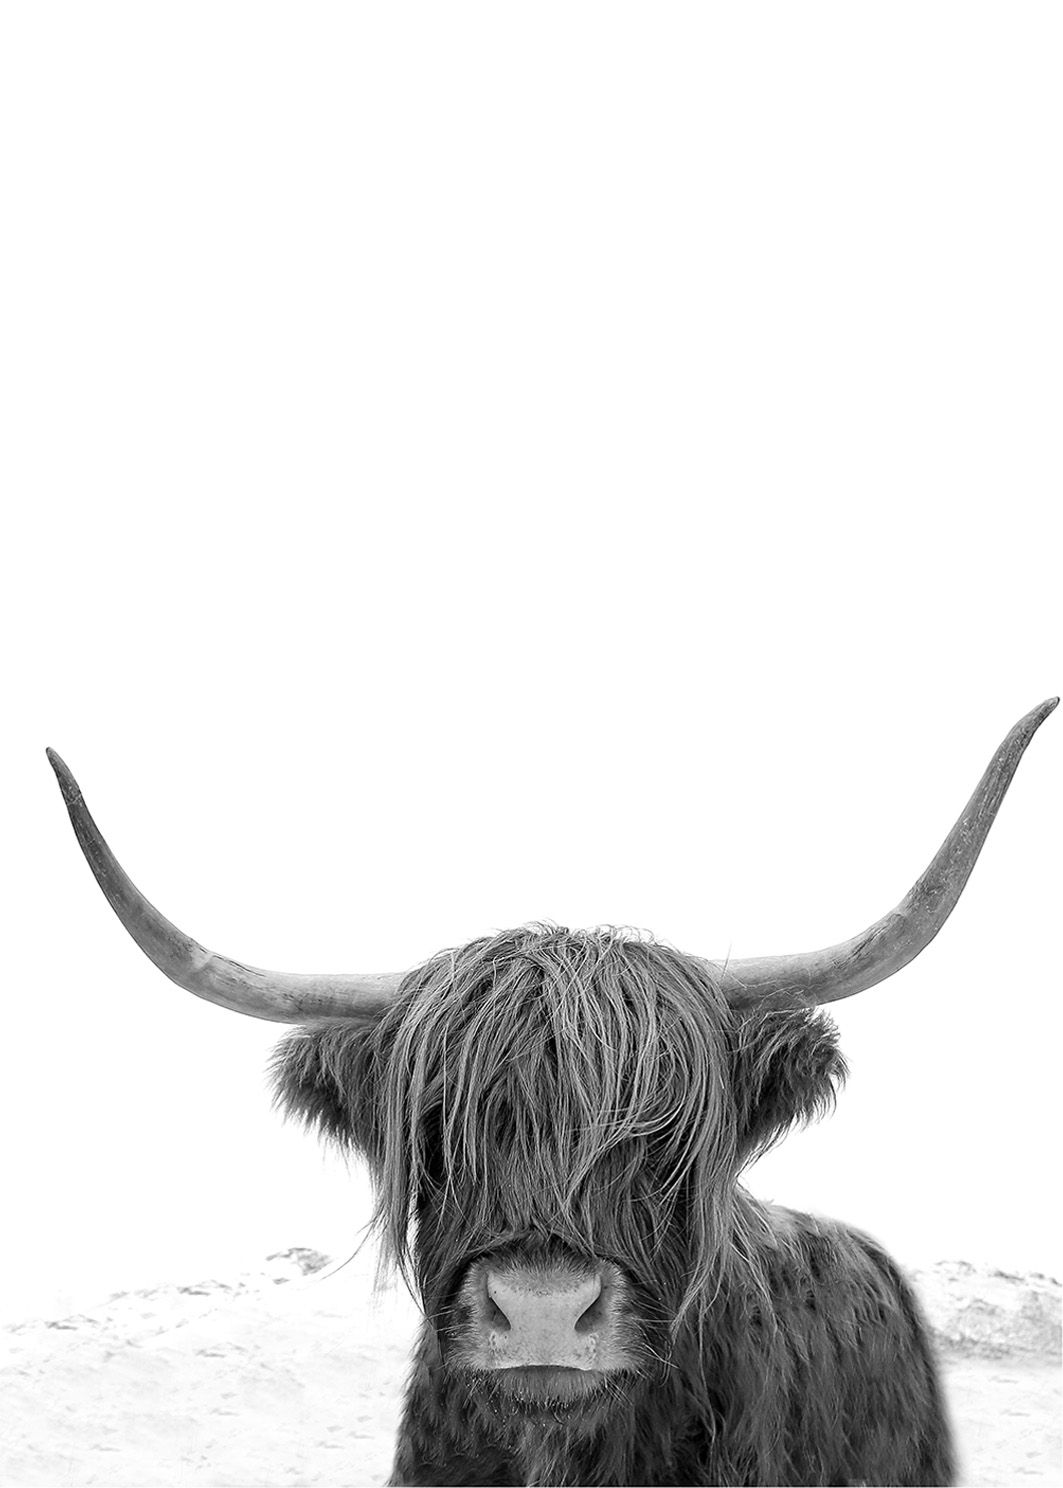 Large Black And White Posters Highland Cow Art Print Highland Cow Photography